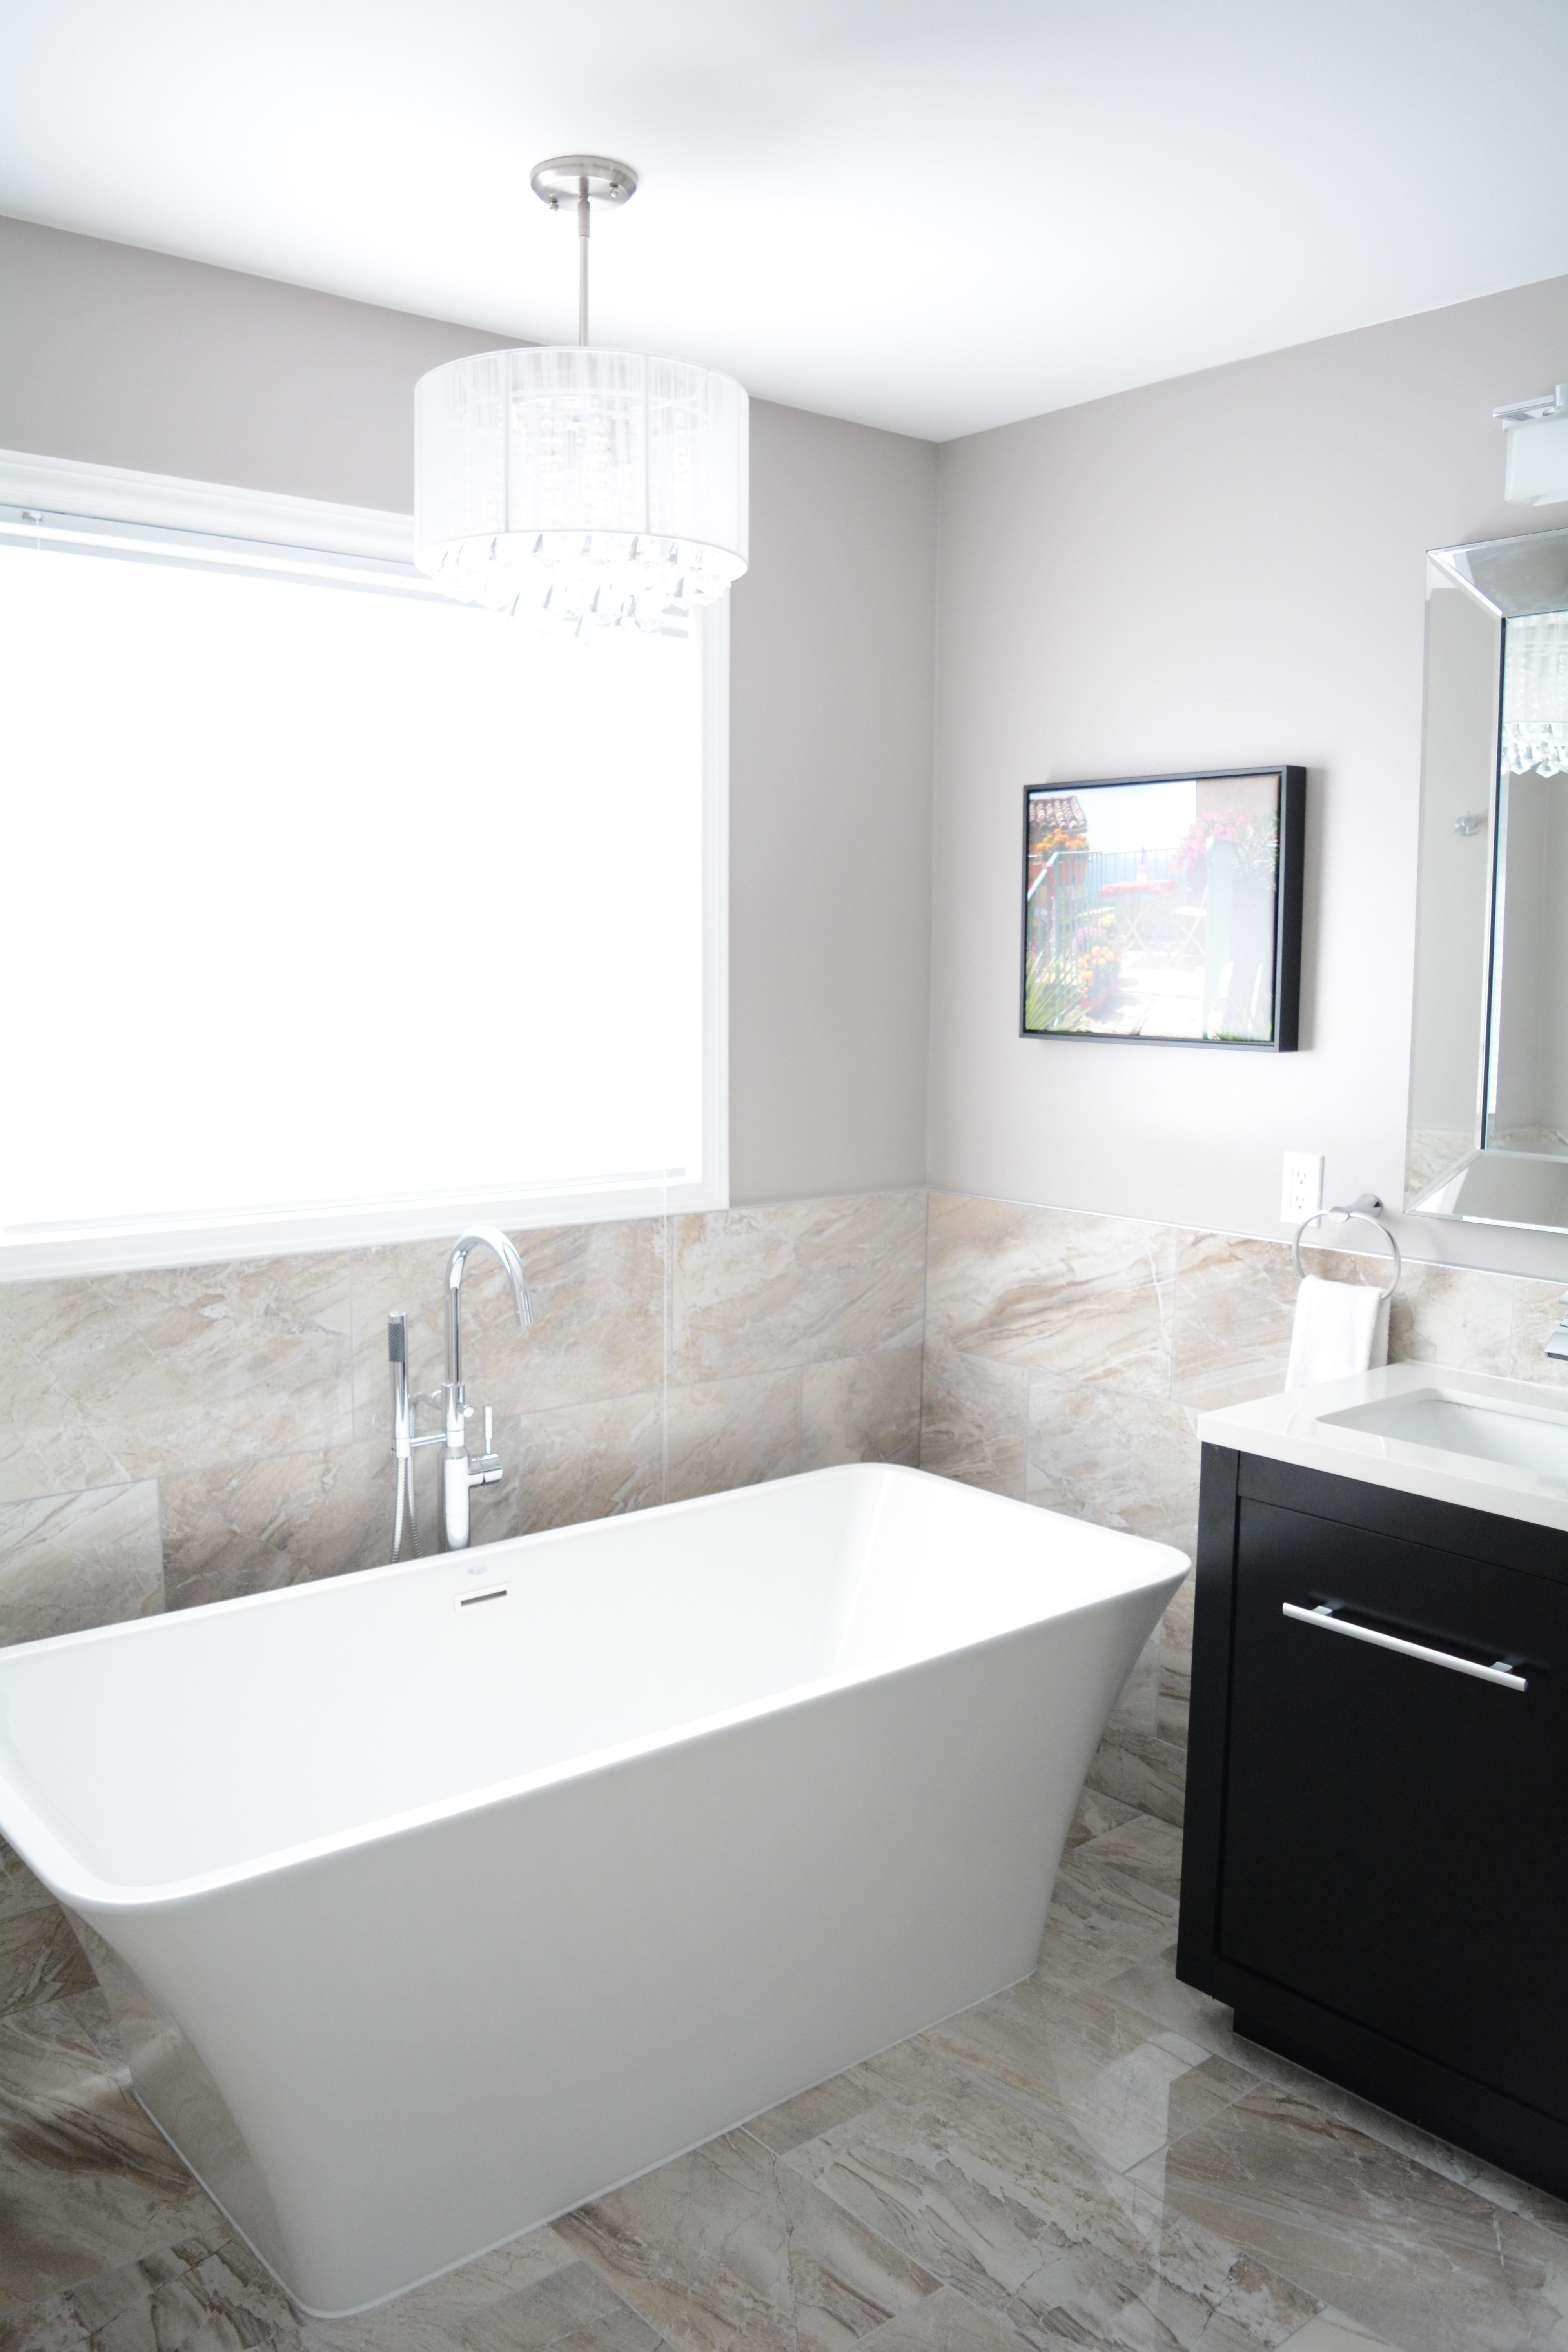 The Top 5 Renovations To Improve Resale Value Cornerstone Select Renovations